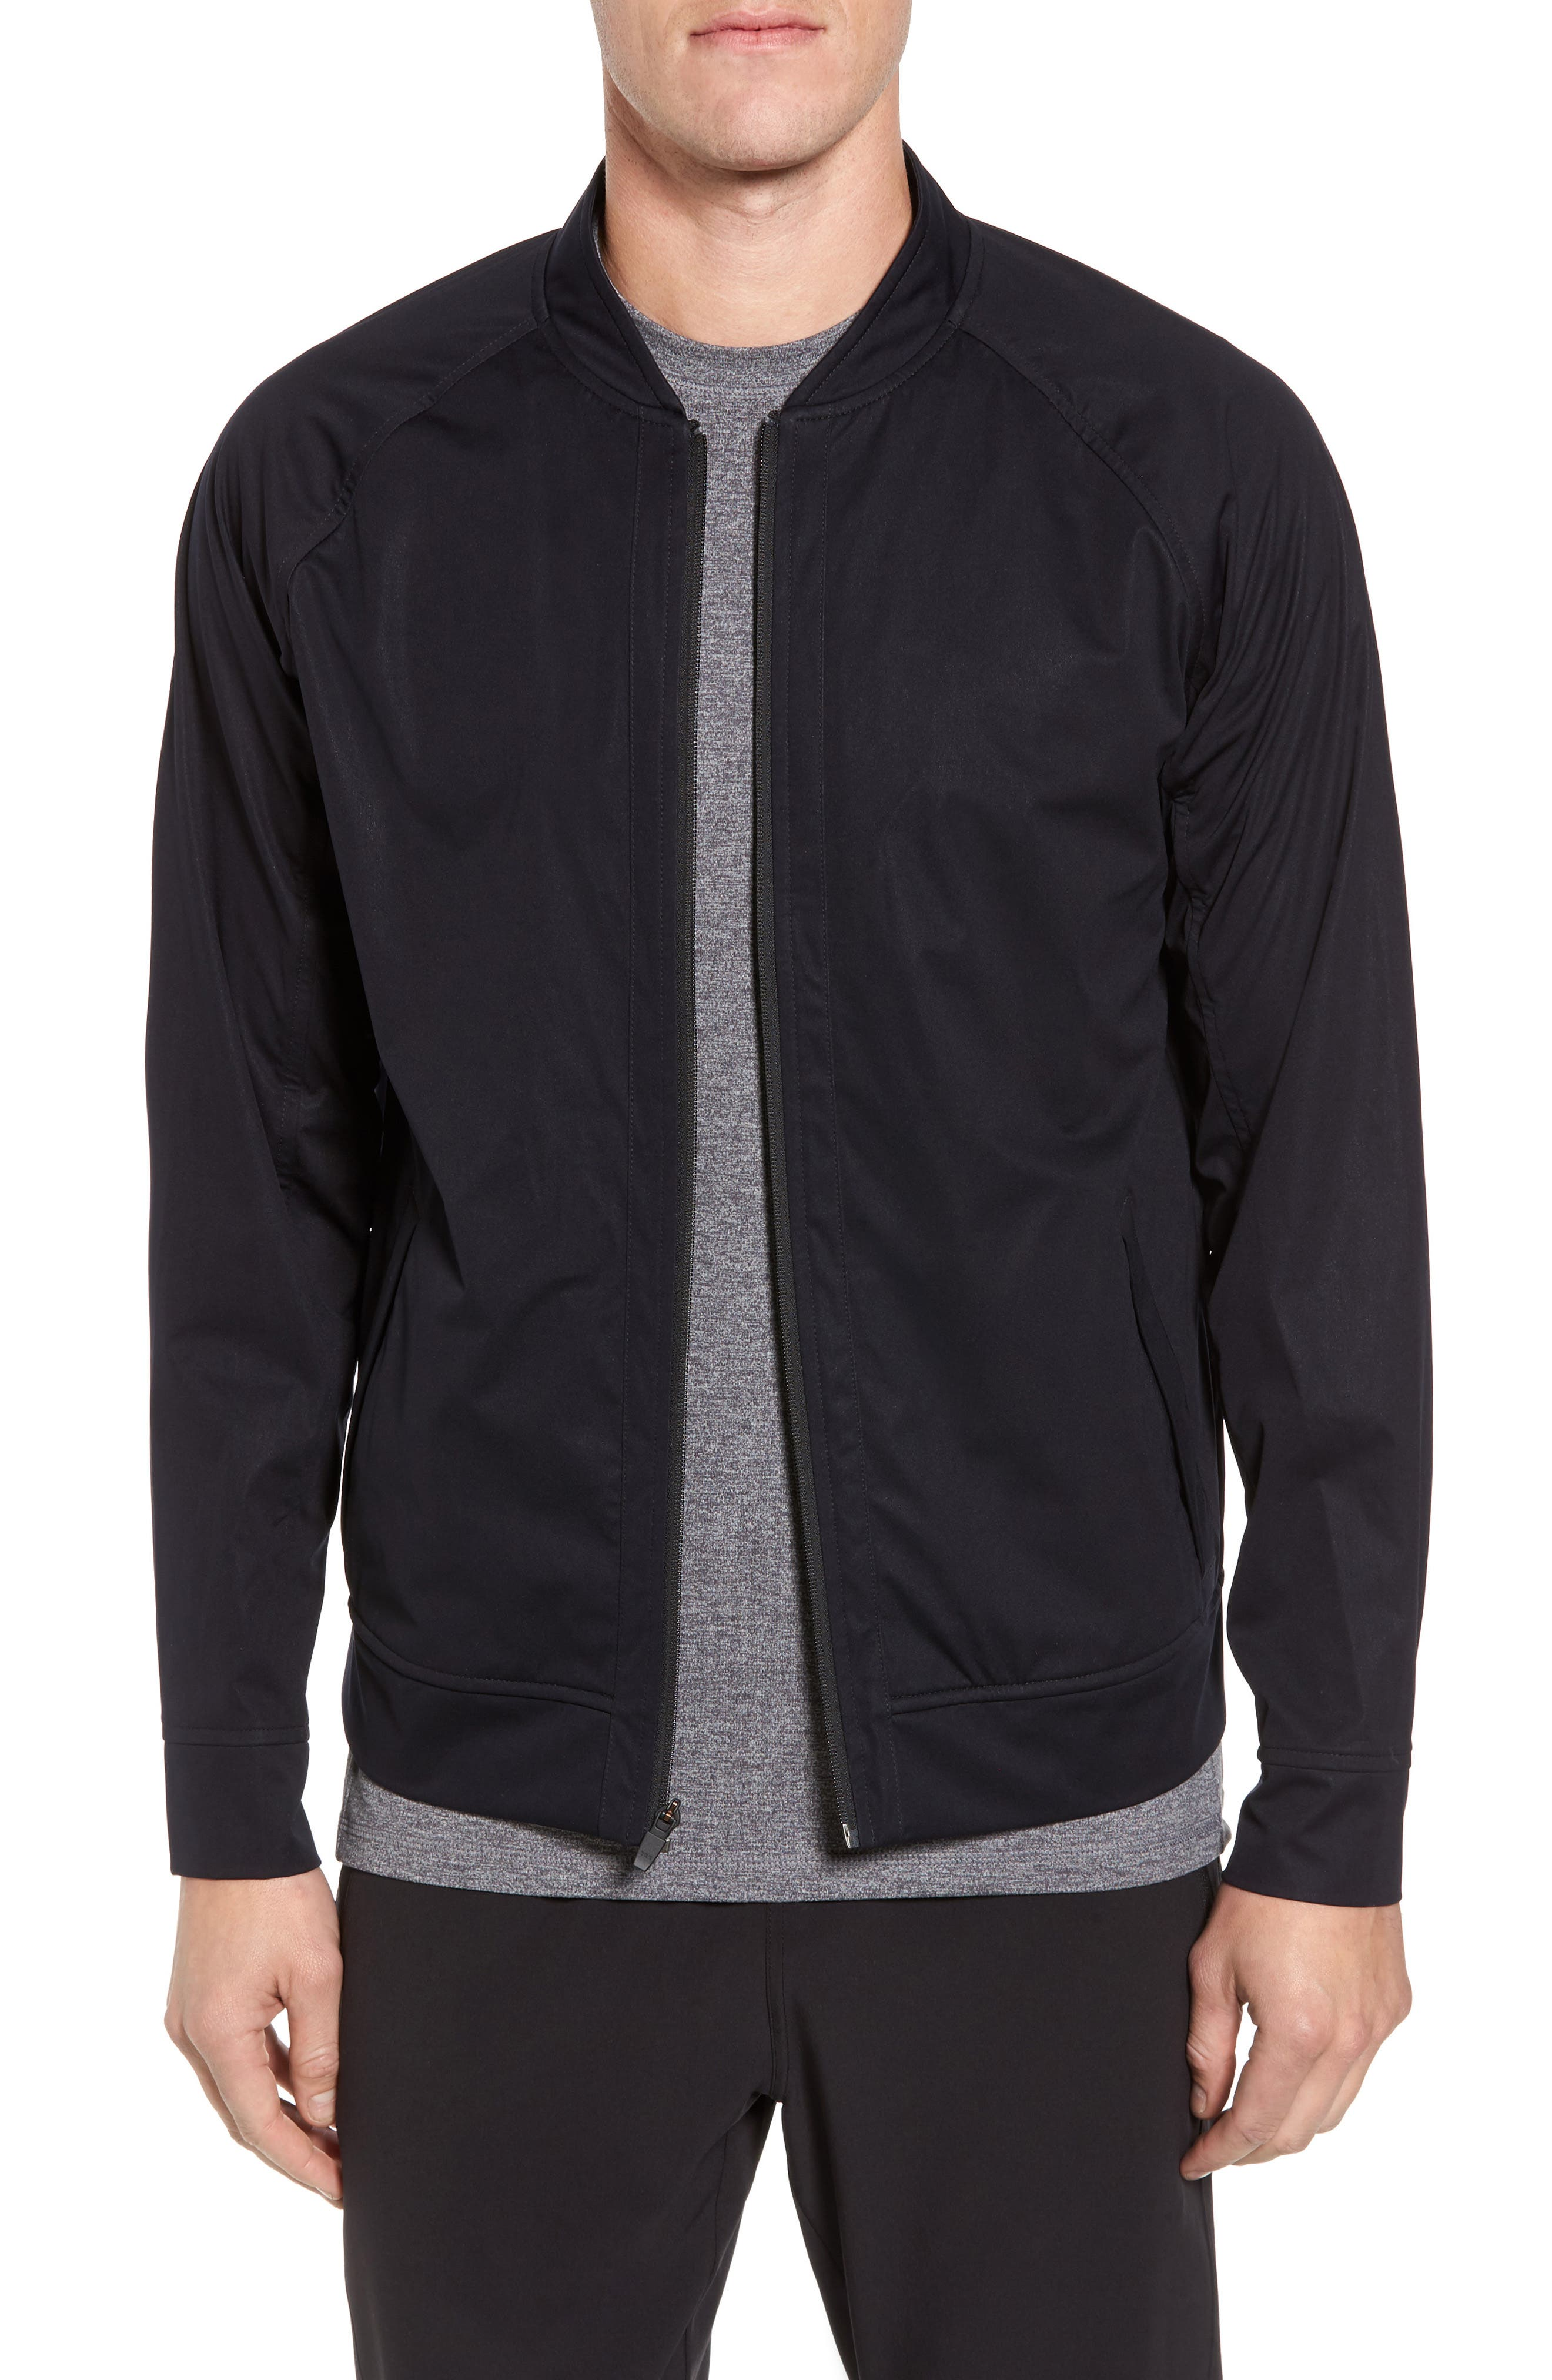 Softshell Bomber Jacket,                         Main,                         color, Black